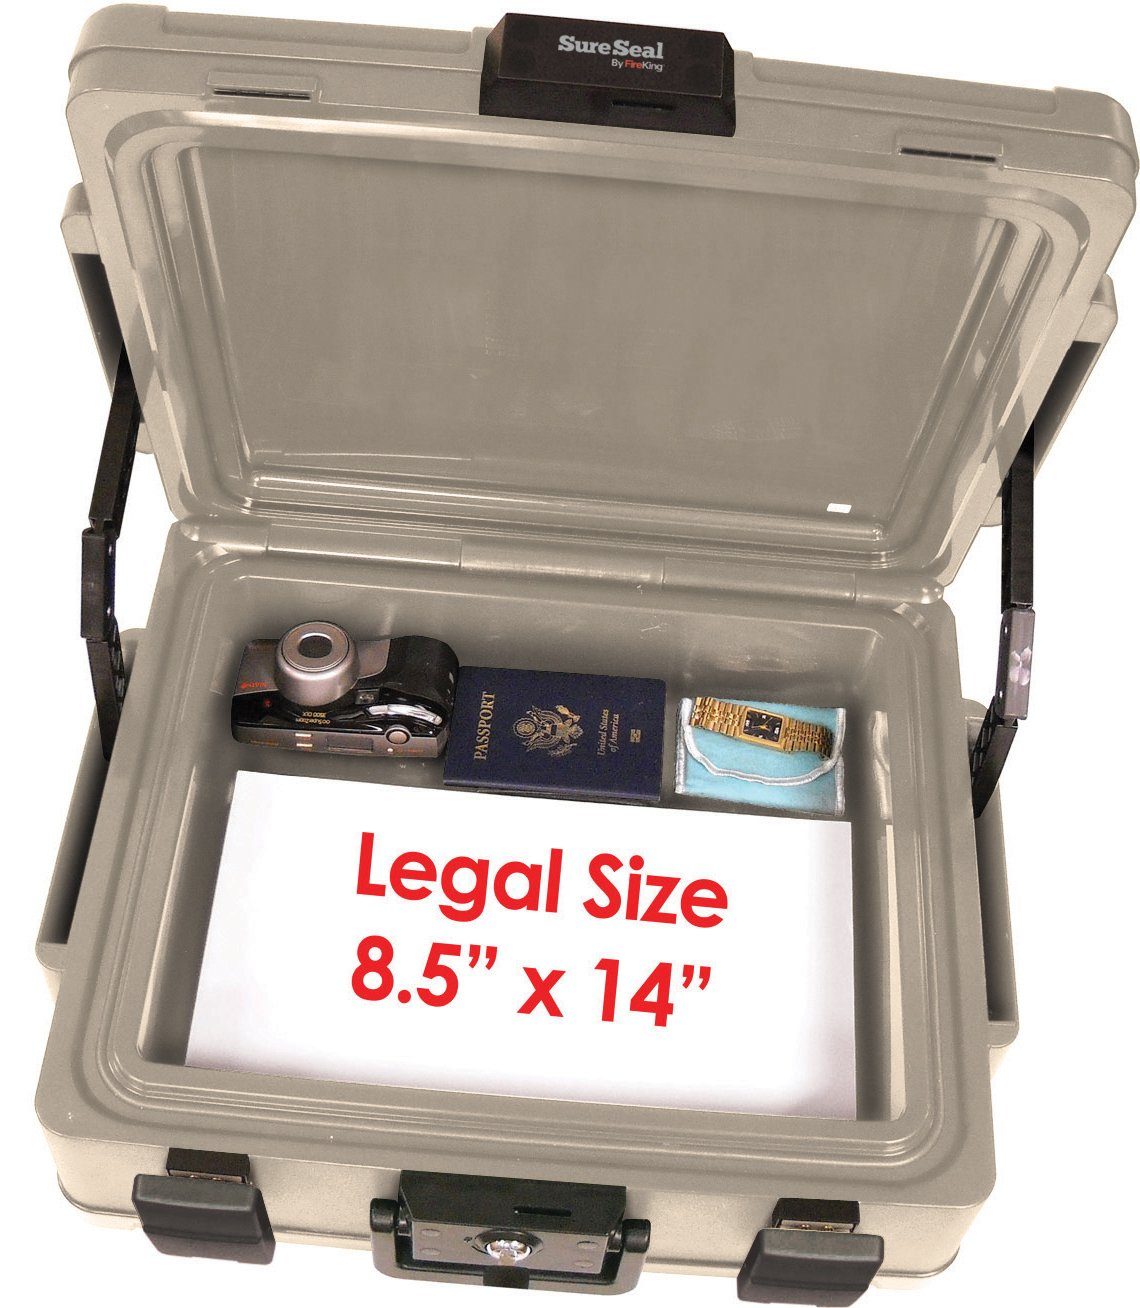 SureSeal by FireKing SS104-A 1 Hour Fireproof Waterproof Safe Chest Fits Legal//Letter Sized Documents,0.38 CU FT Storage Capacity